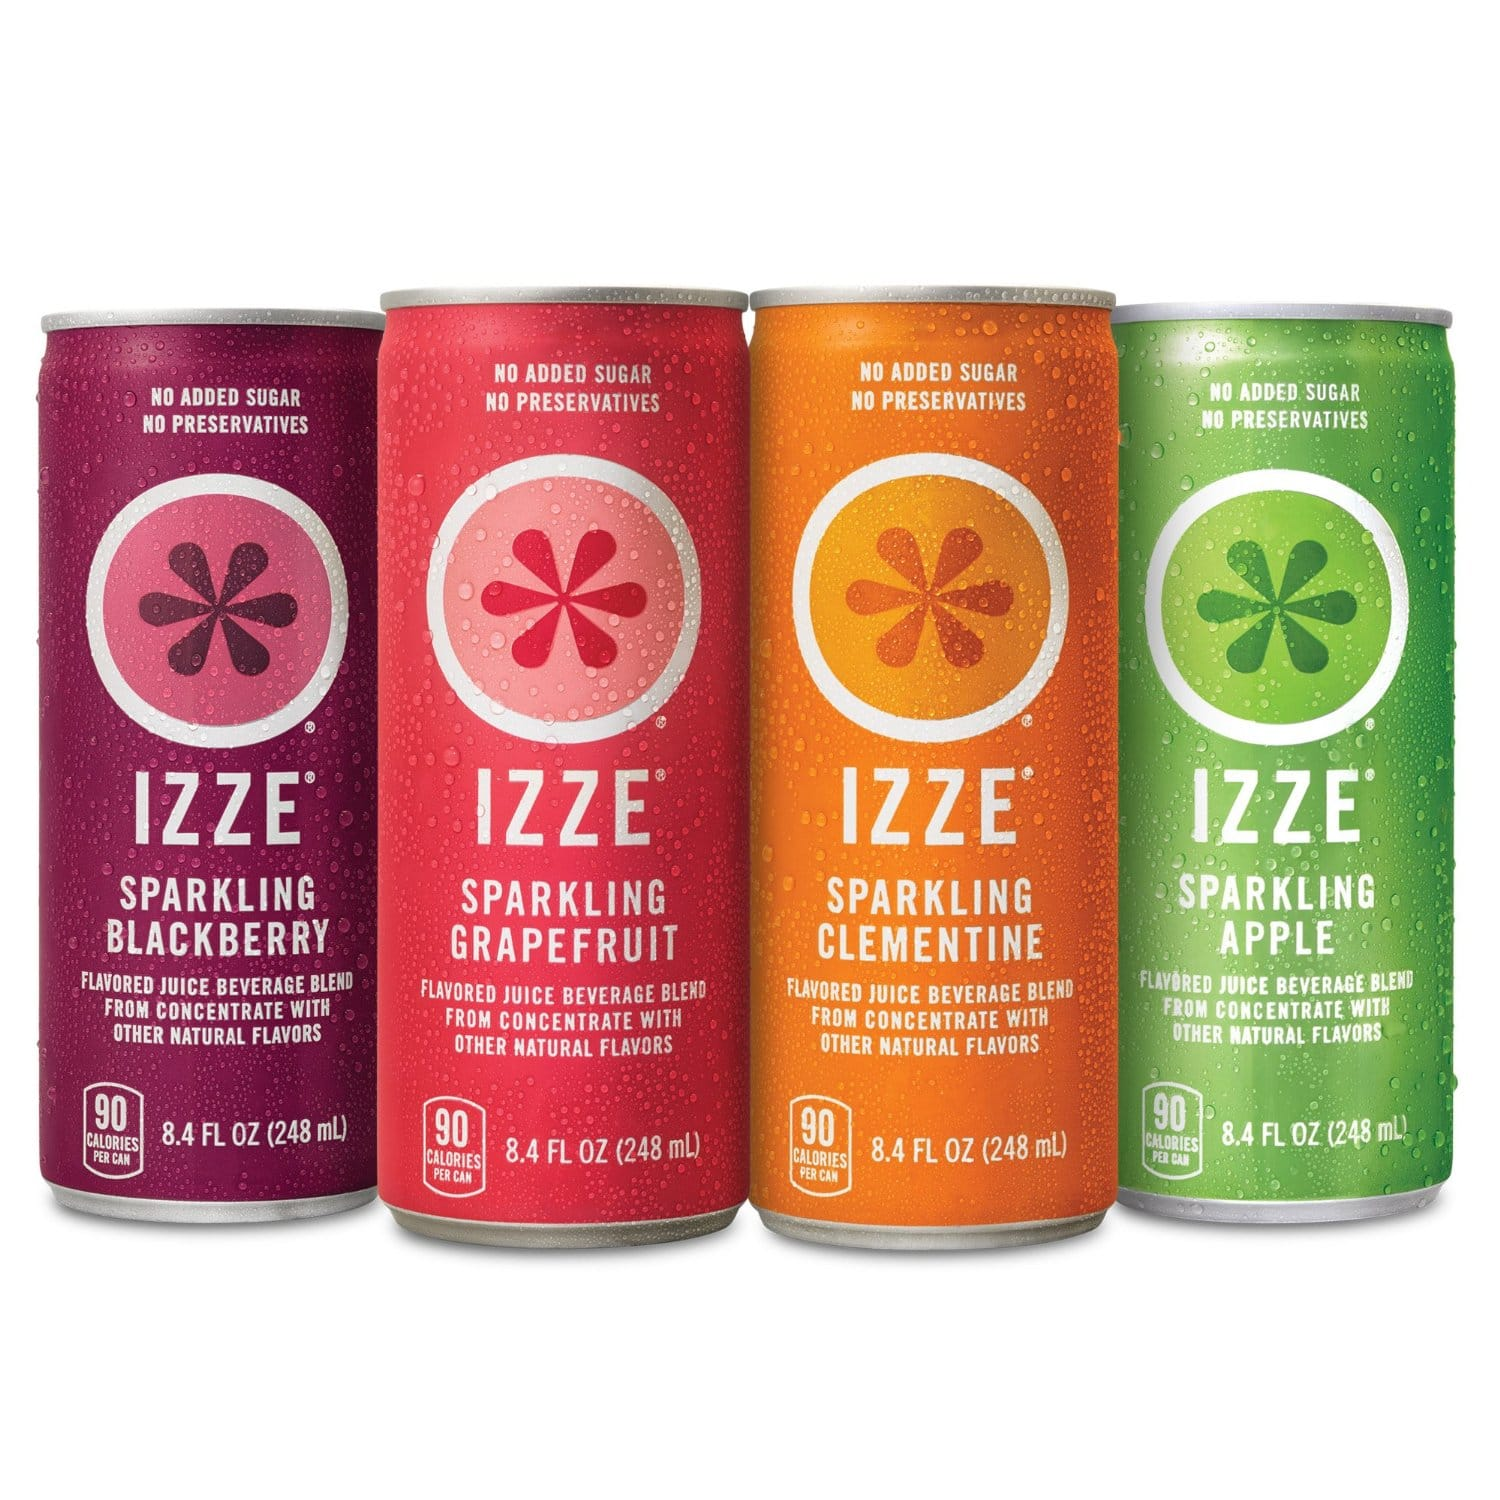 IZZE Sparkling Juice 4 Flavor Variety Pack, 8.4 Ounce (Pack of 24) - $12.39 AC & S&S ($10.84 AC & 5 S&S Orders) + Free Shipping - Amazon